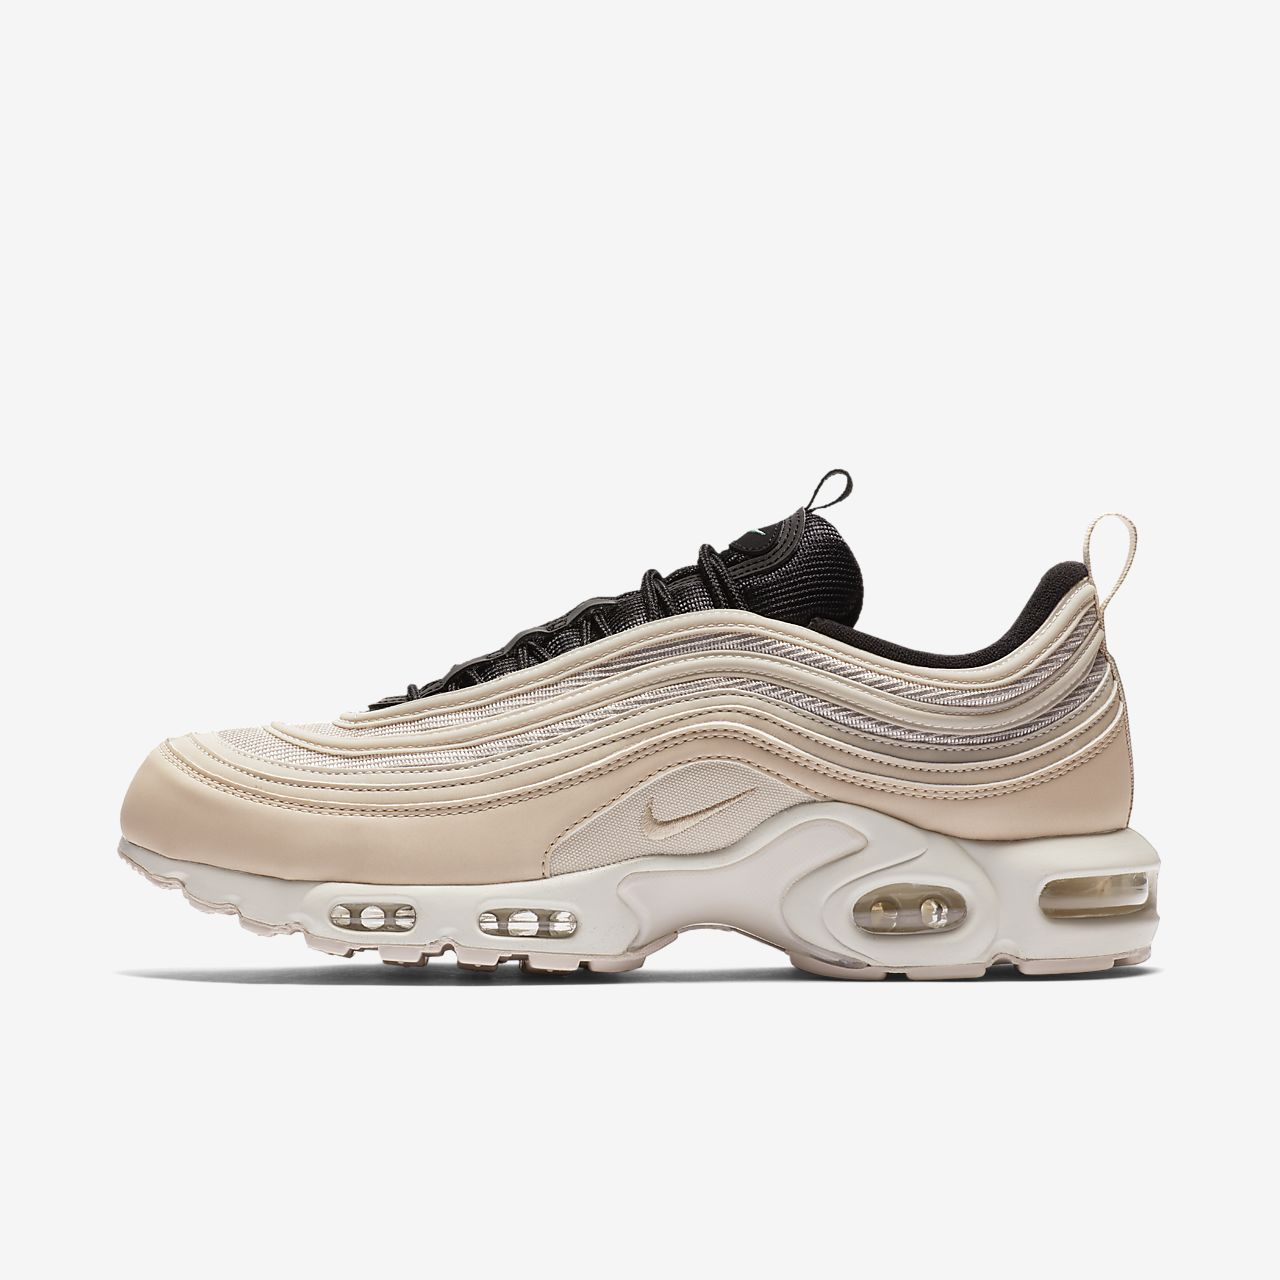 best website 79d01 466d1 ... Nike Air Max Plus 97 Zapatillas - Hombre